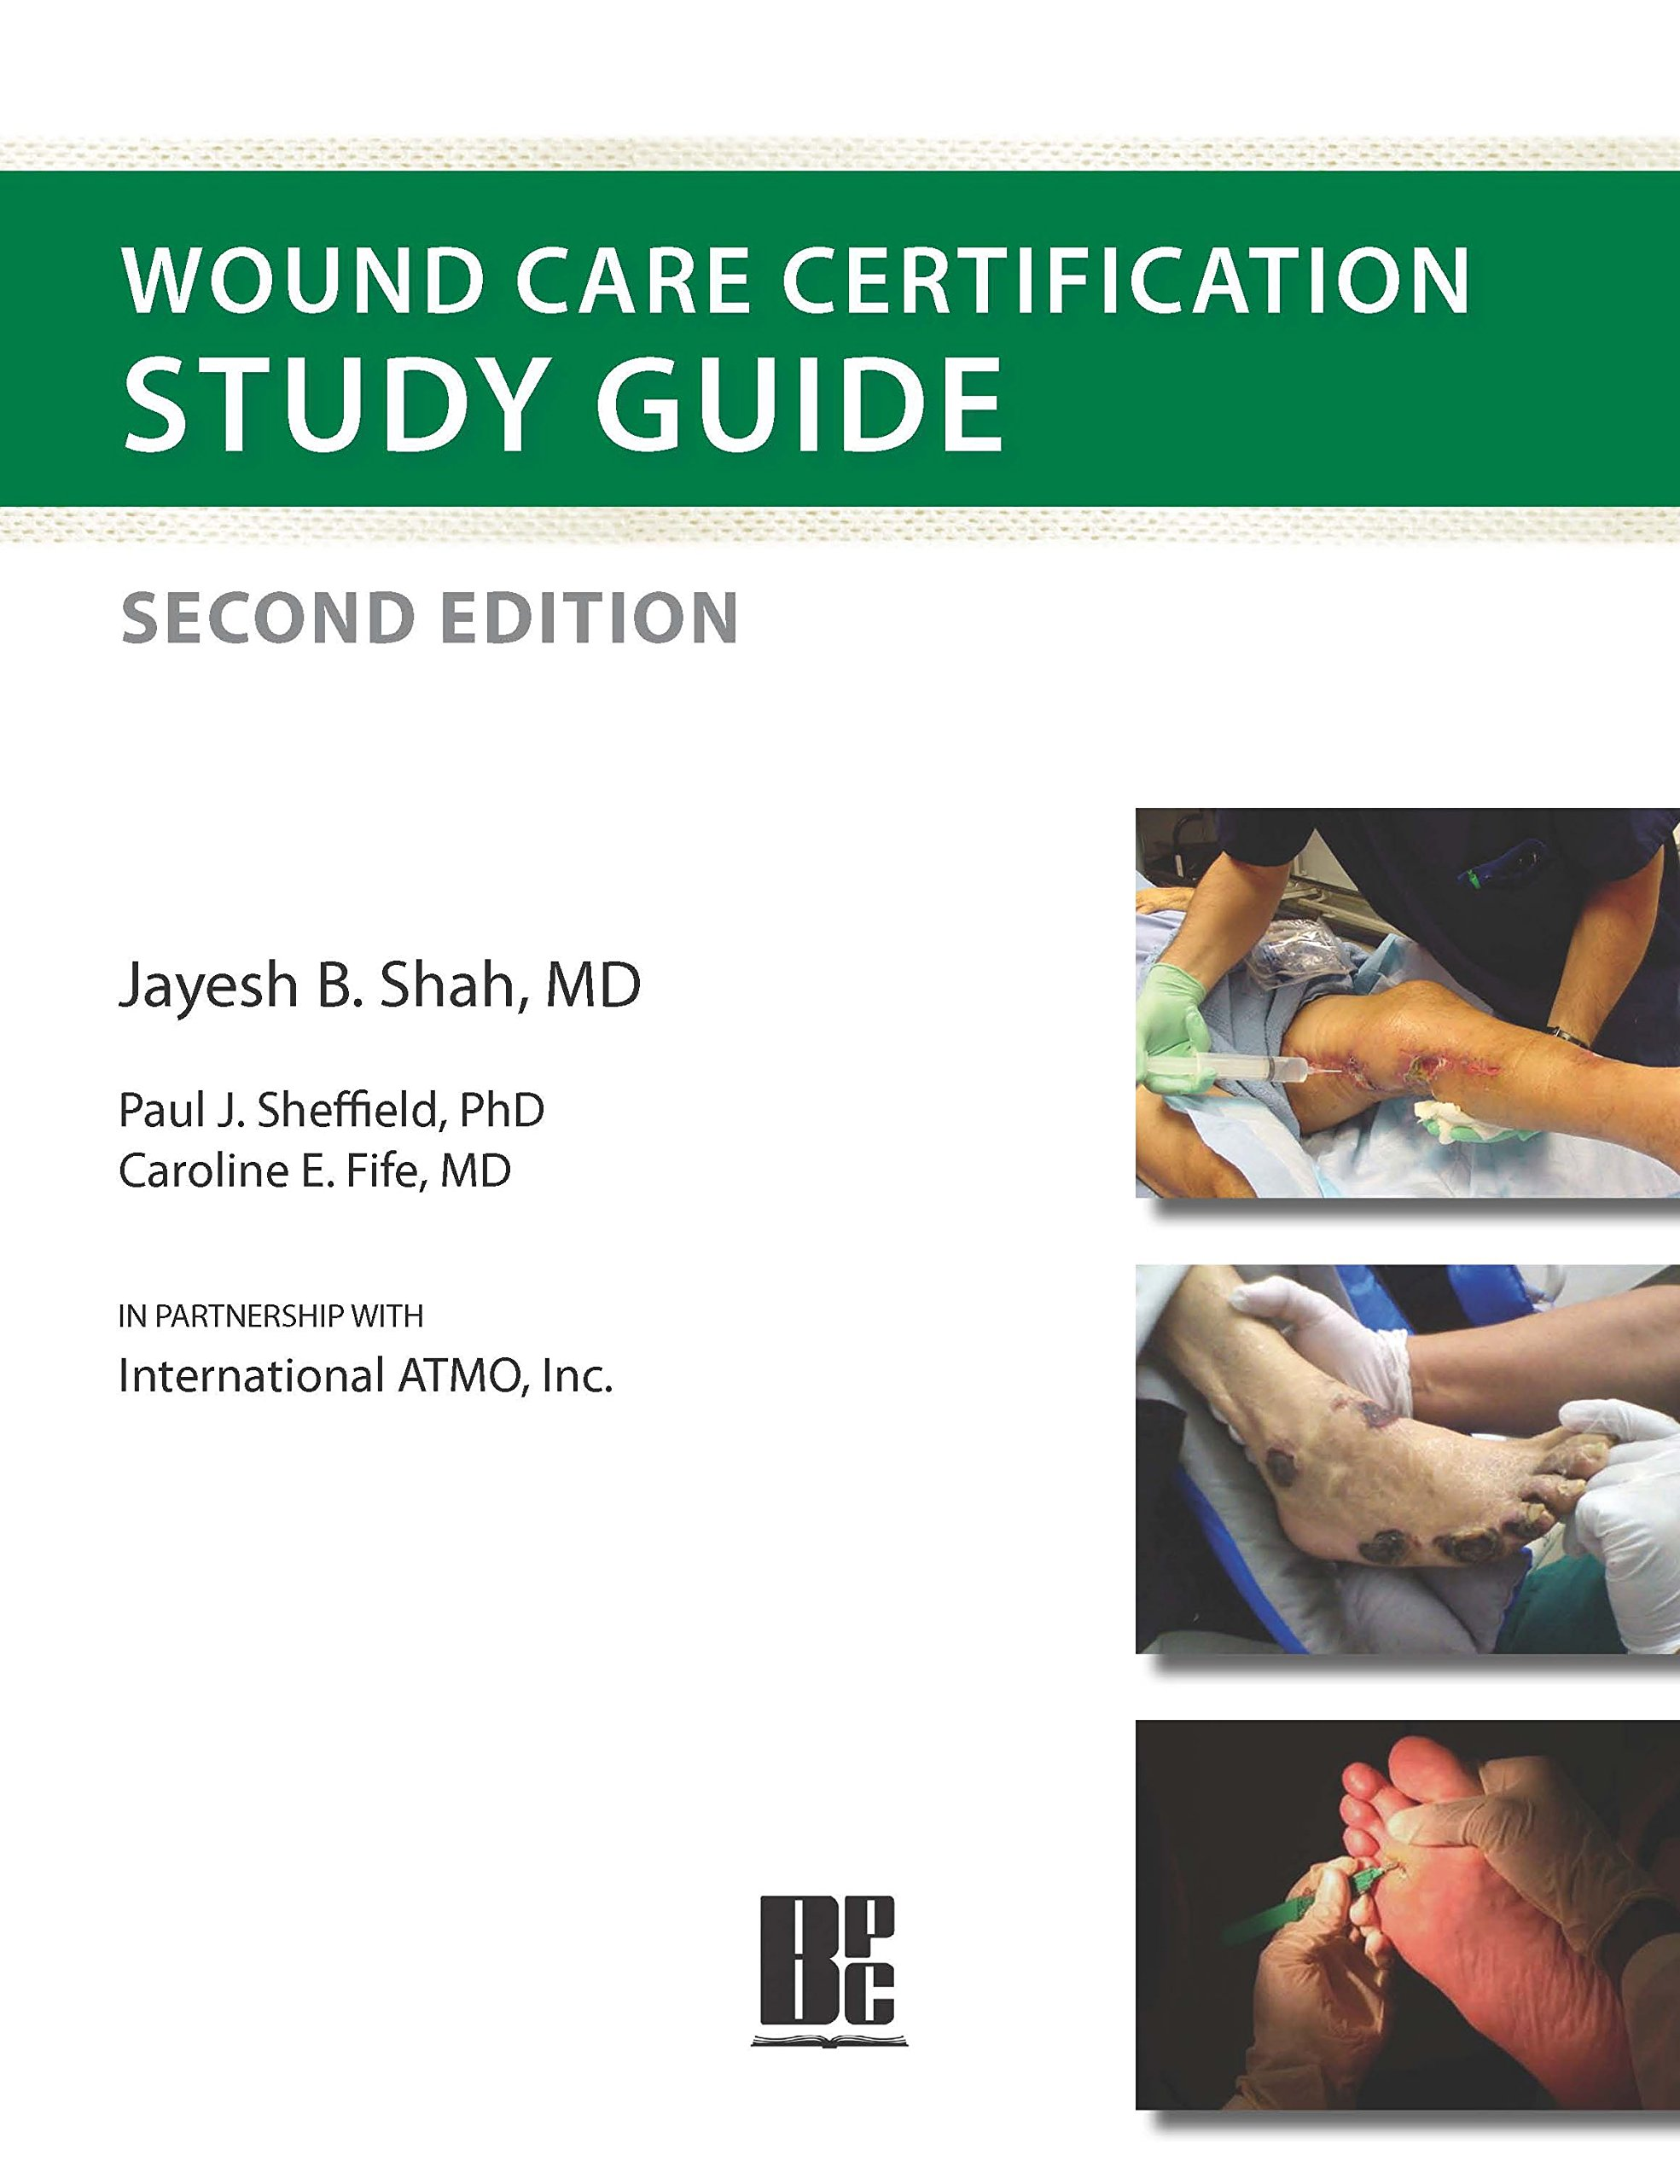 Wound Care Certification Study Guide, Second Edition: Jayesh B. Shah M.D.,  Paul J. Sheffield, PhD, Caroline E. Fife, MD: 9781930536838: Amazon.com:  Books